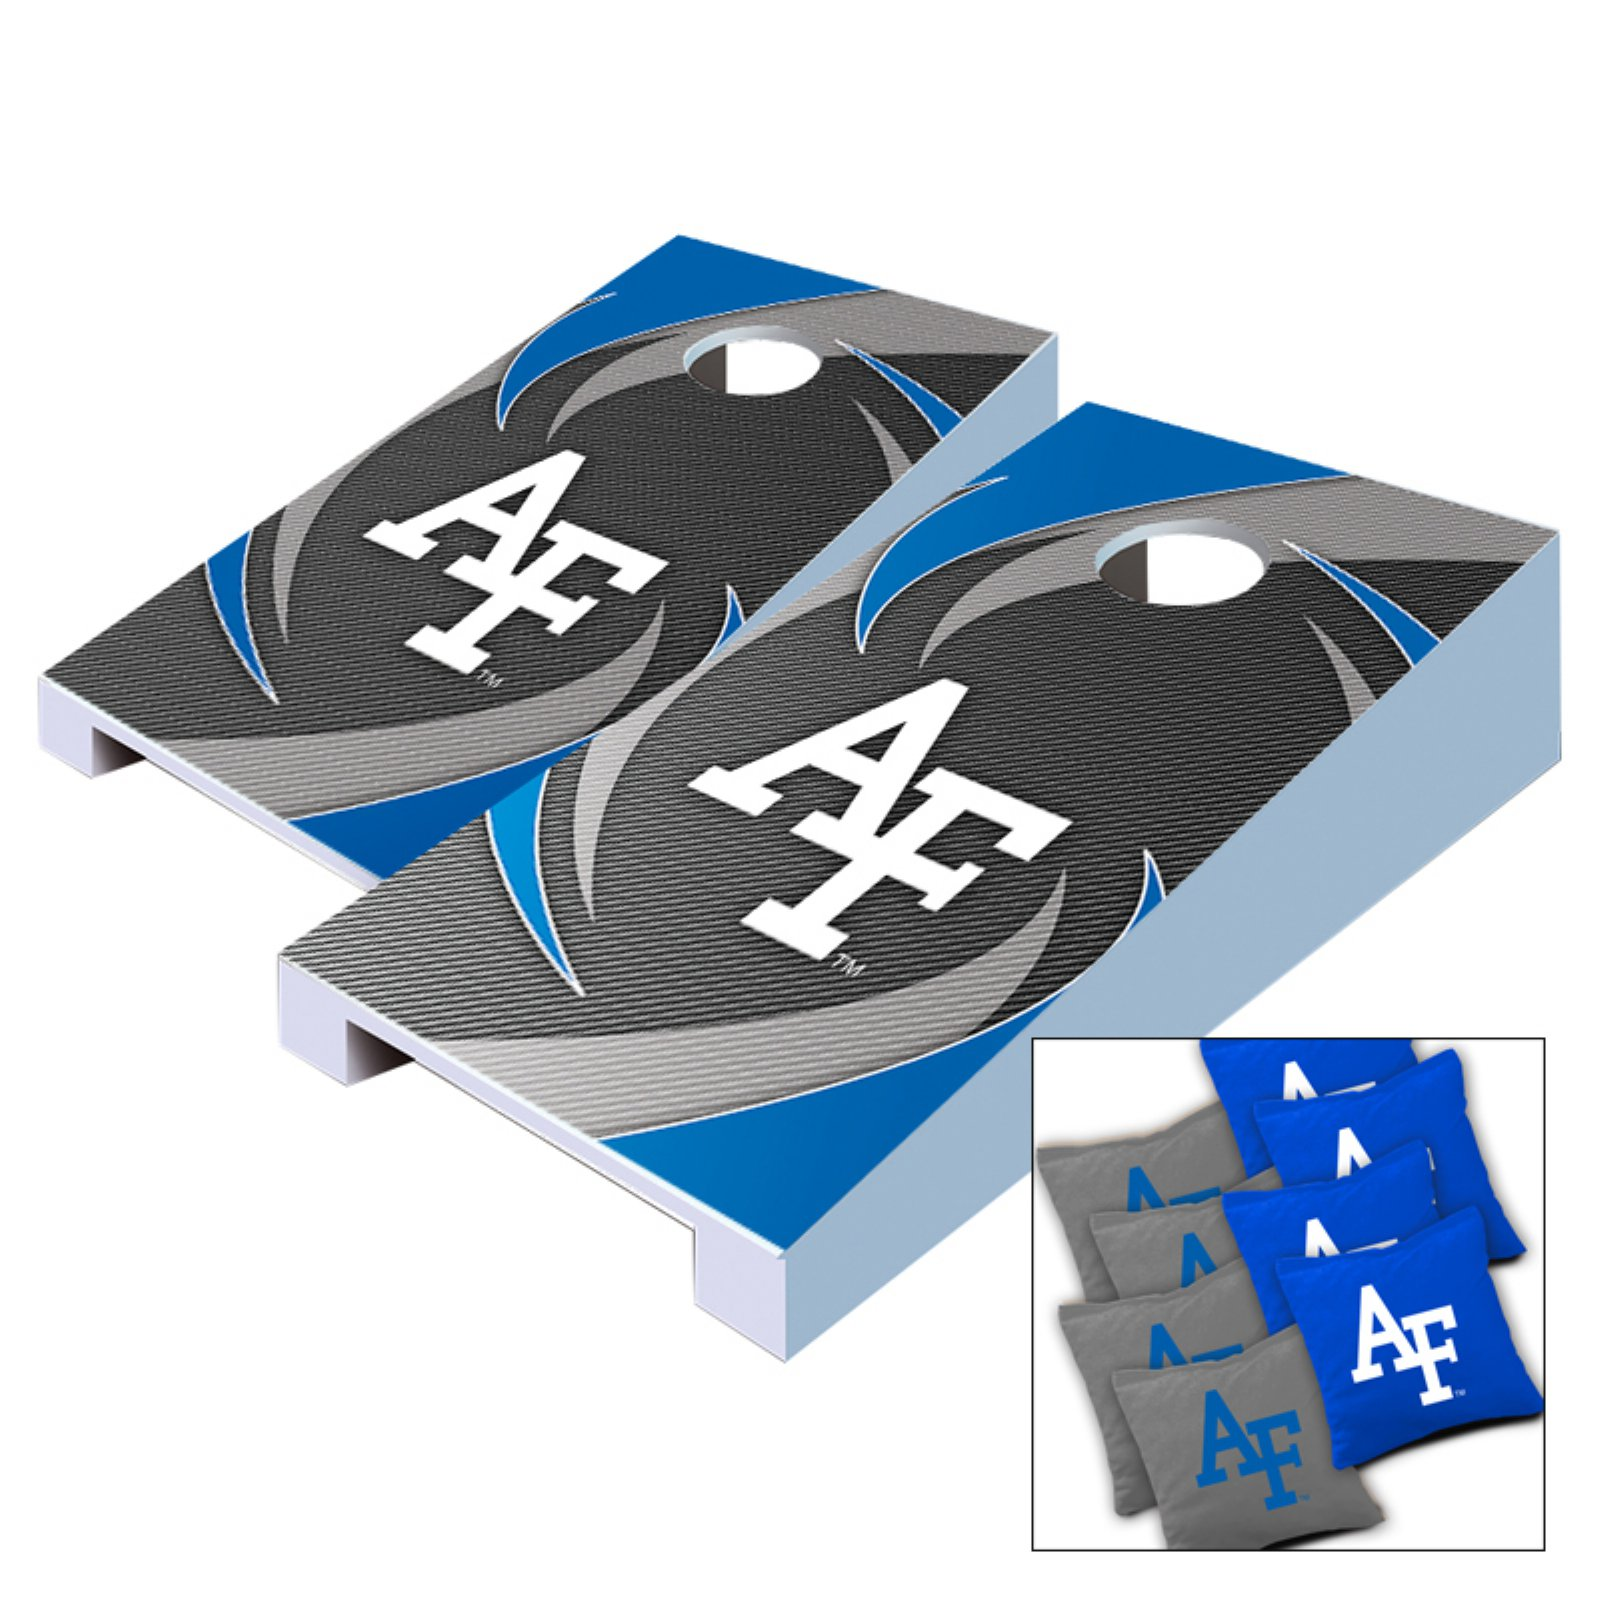 NCAA Air Force Falcons Swoosh Tabletop Cornhole Set by AJJ Cornhole